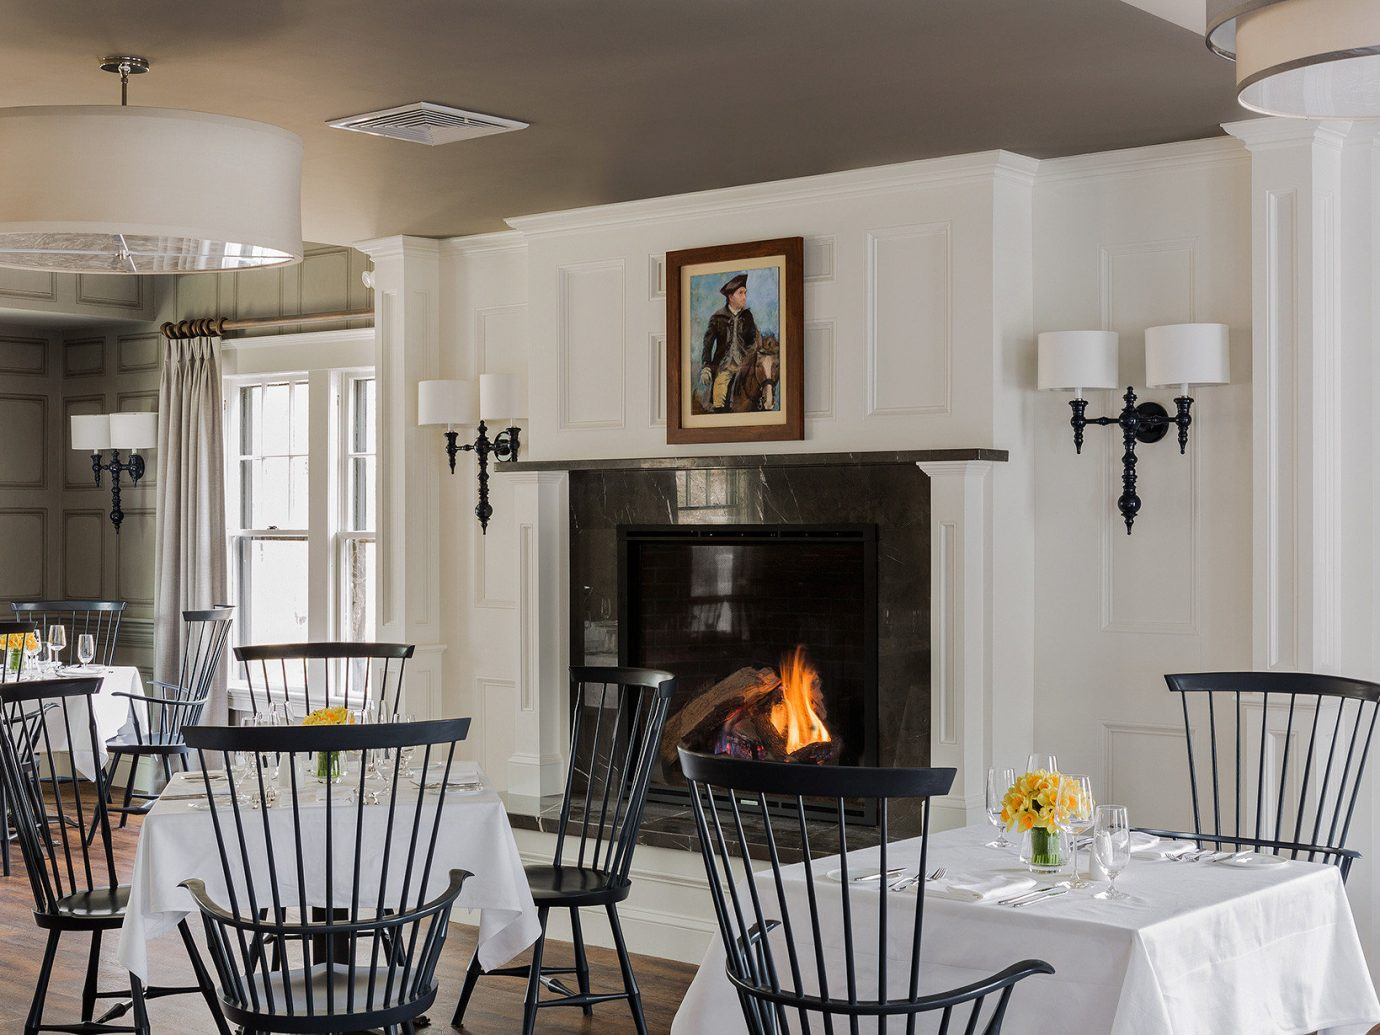 Boutique Classic Dining Drink Eat Fireplace Hotels Inn chair indoor floor room property dining room Kitchen home ceiling estate cottage interior design living room lighting real estate farmhouse hearth metal Villa cabinetry furniture area